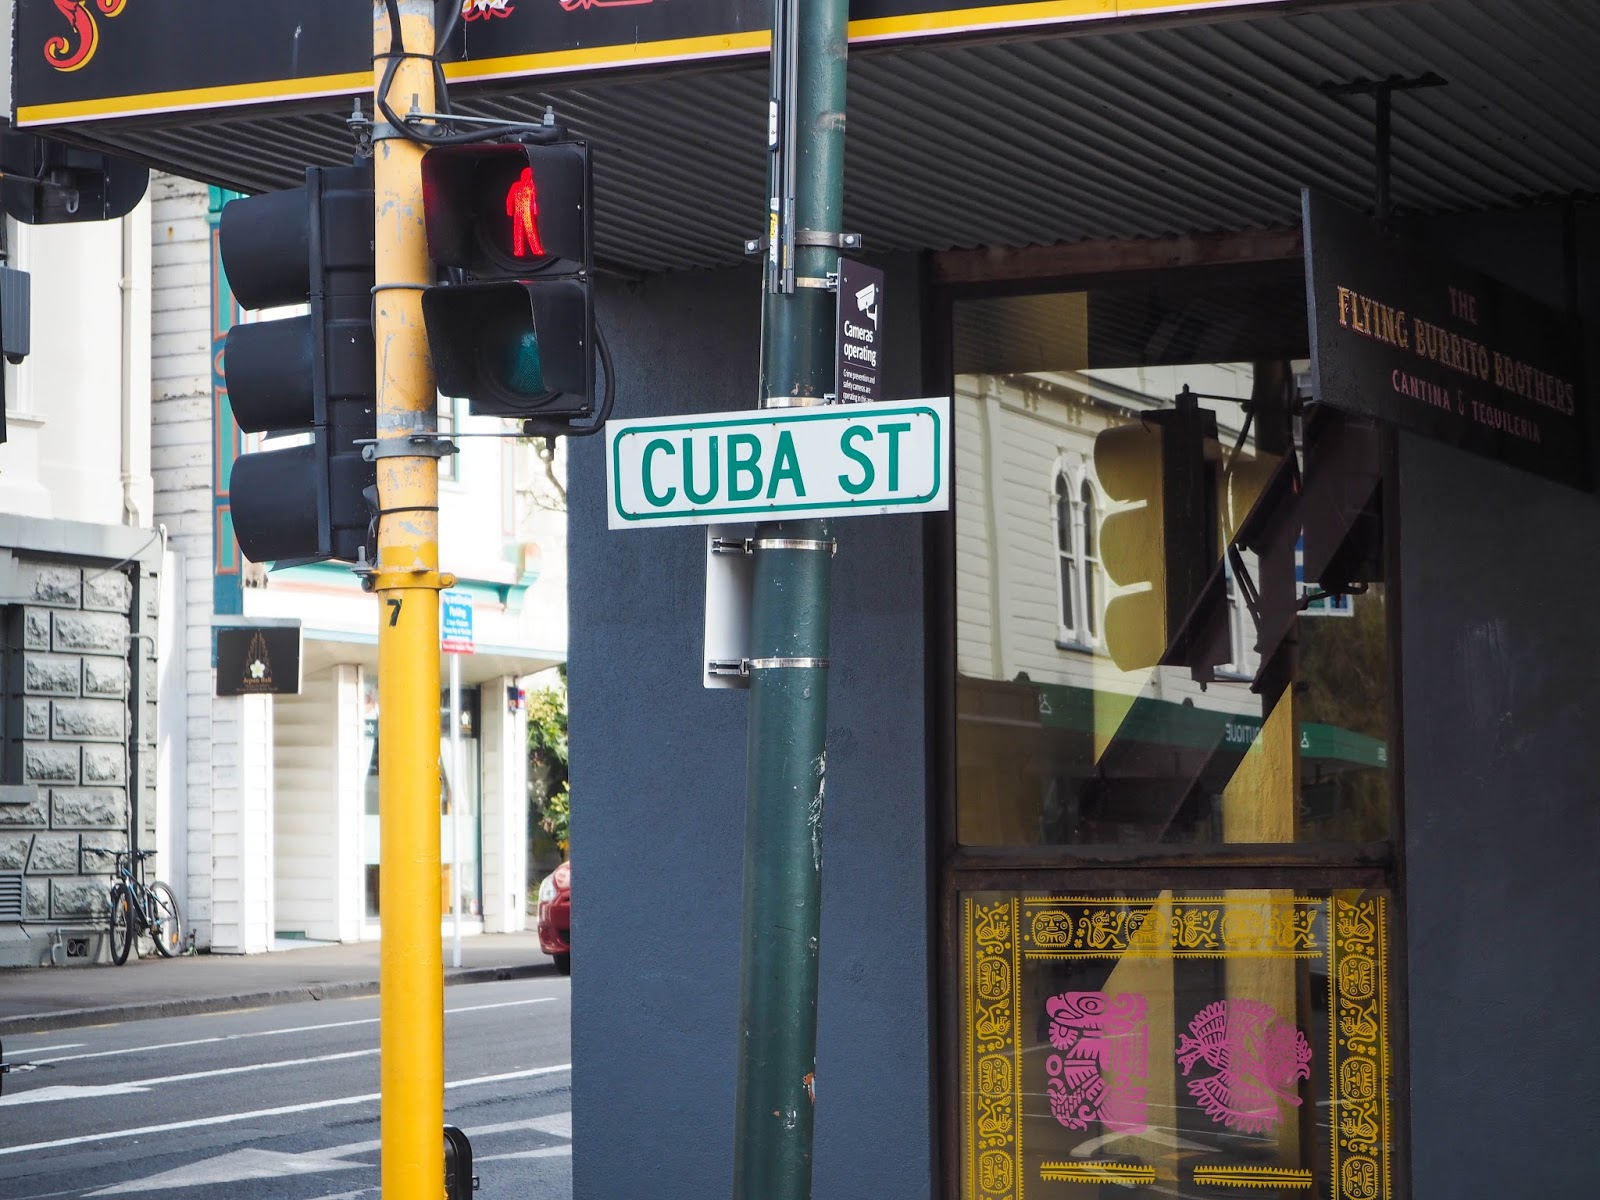 Cuba St, Wellington, New Zealand